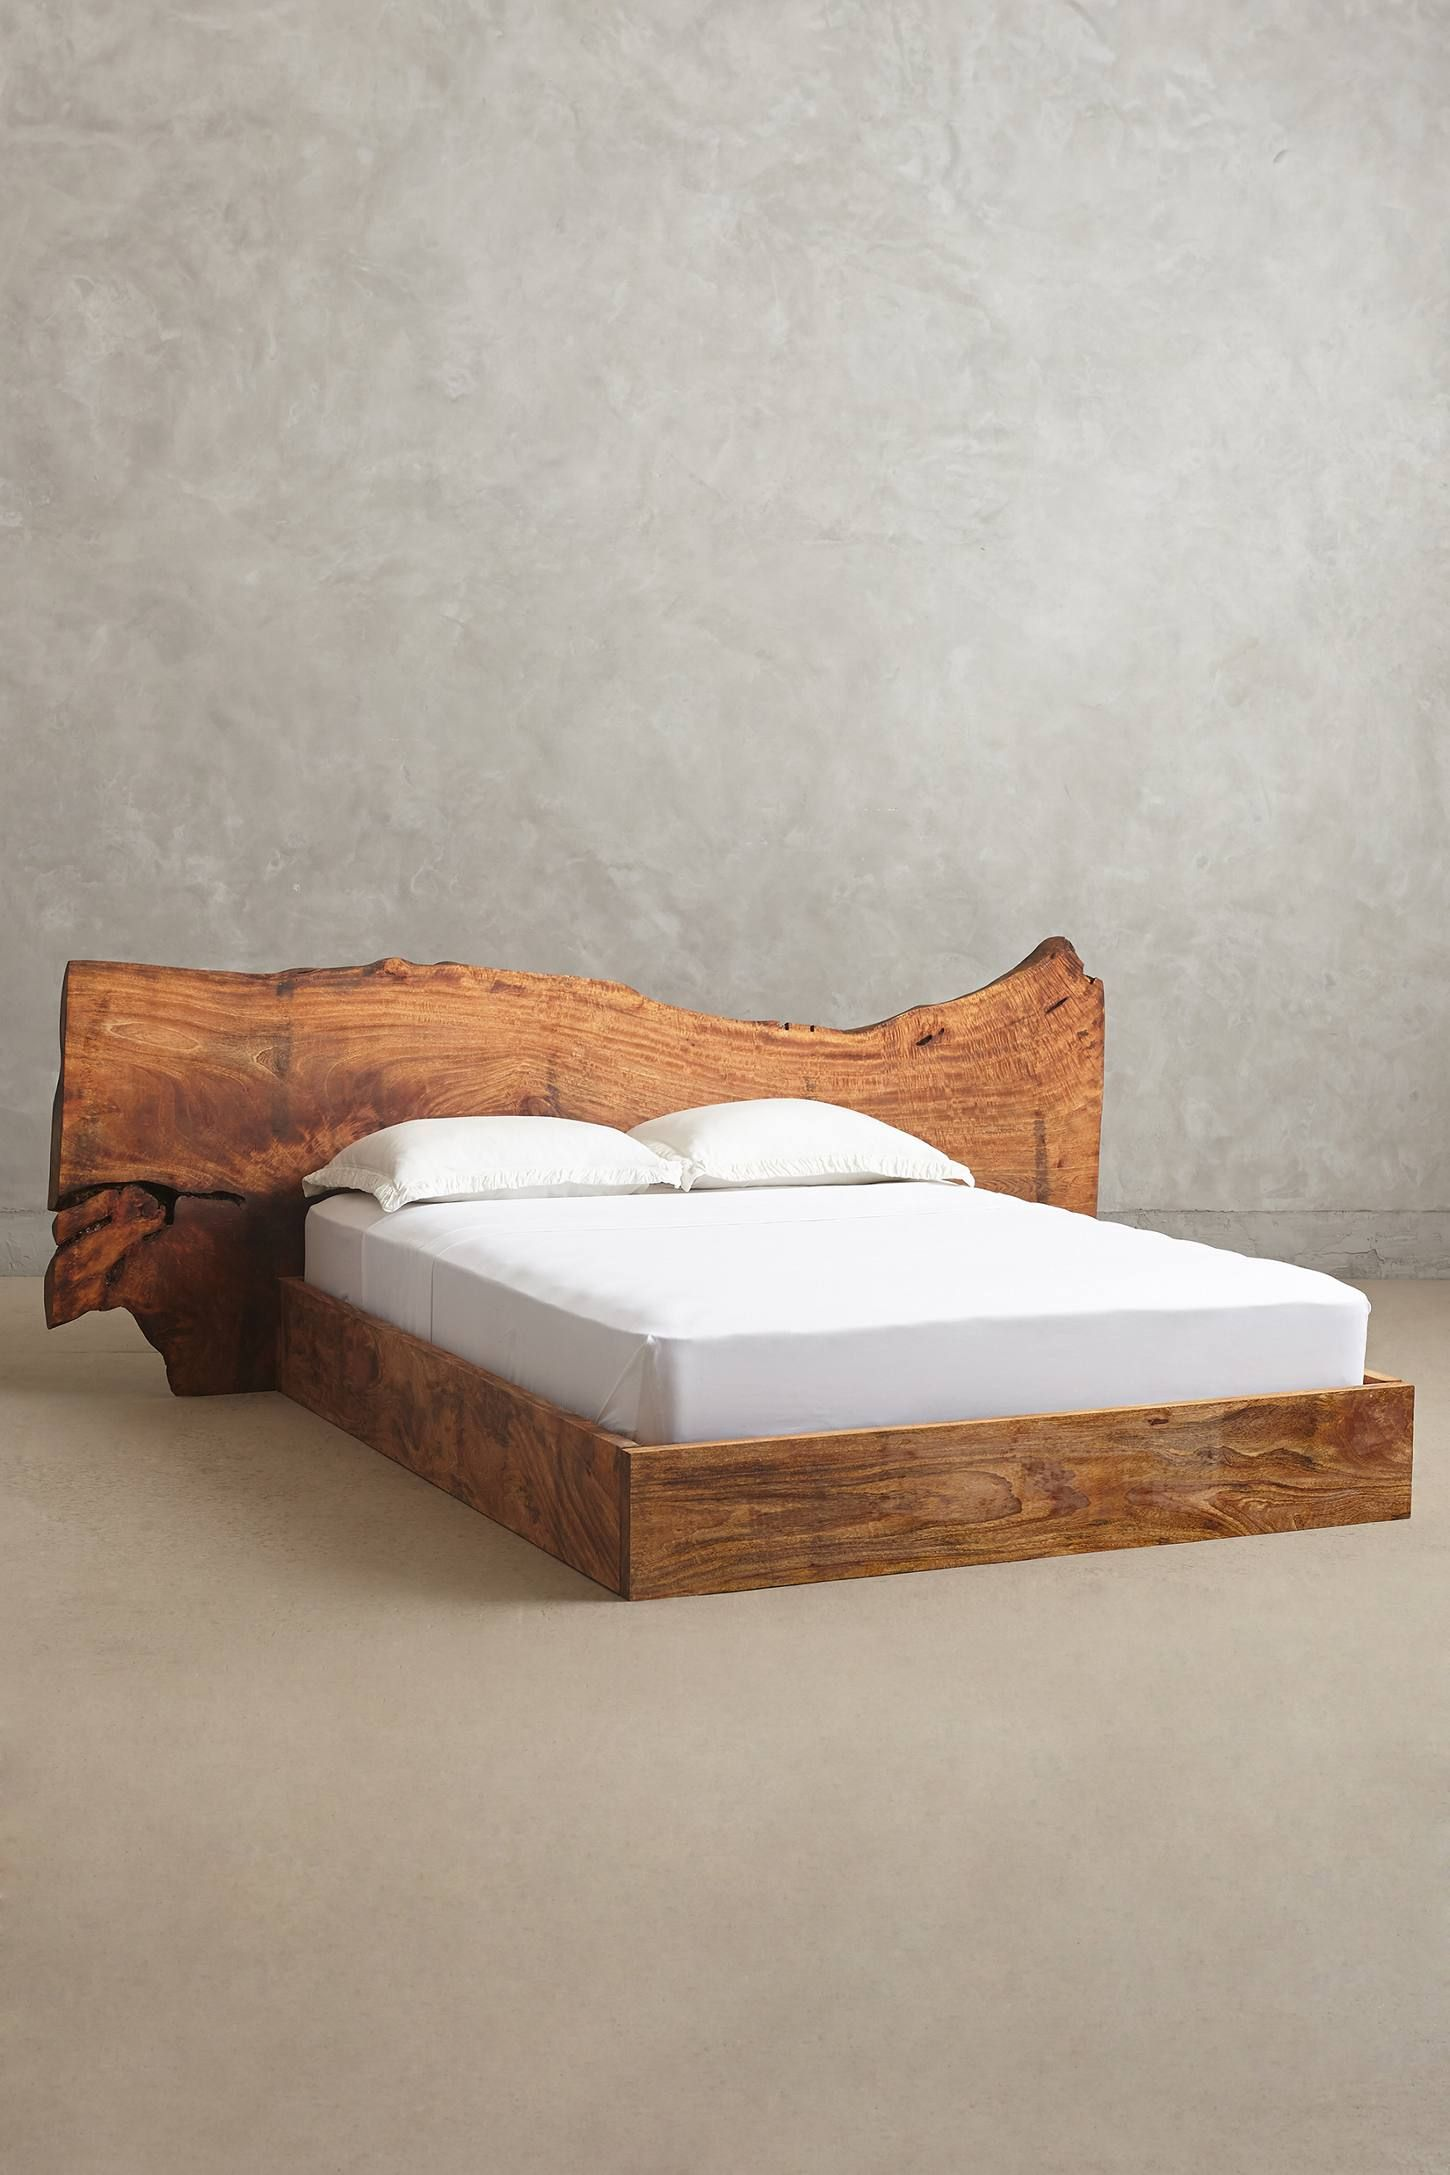 Live edge wood queen bed beds pinterest muebles alcoba and